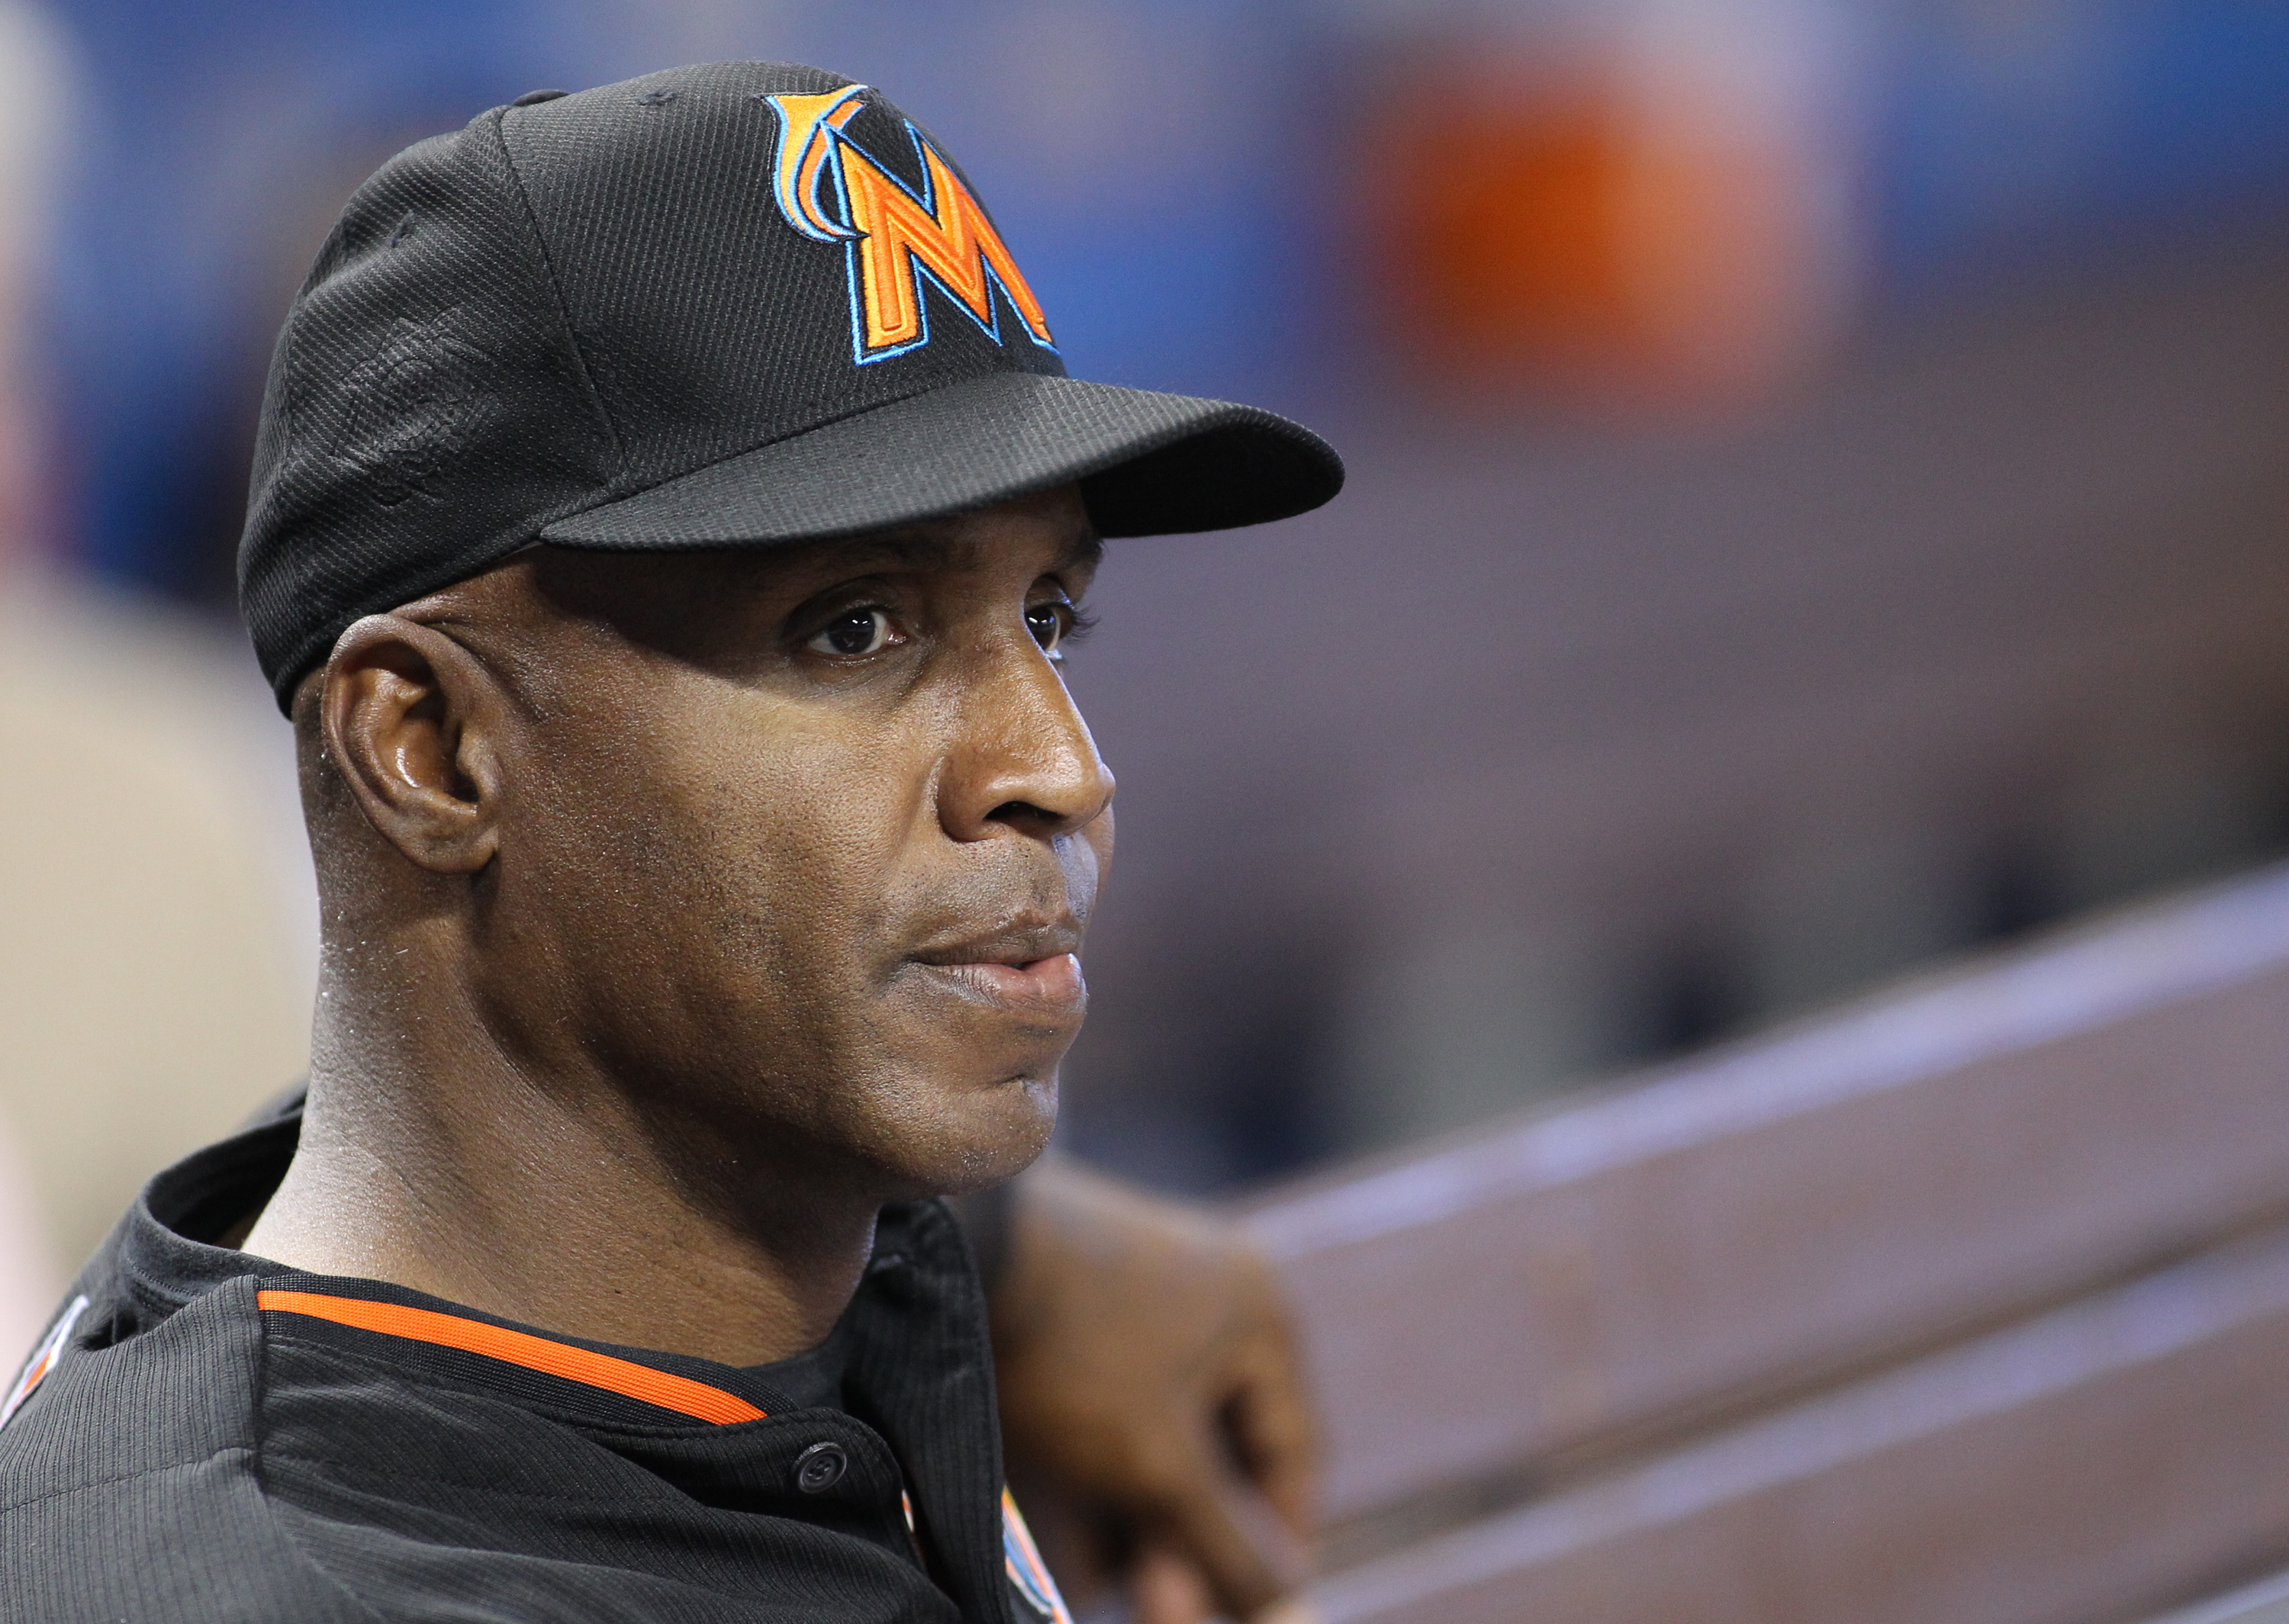 Miami Marlins hitting coach Barry Bonds watches batting practice before a baseball game against the Washington Nationals Wednesday, April 20, 2016, in Miami. (AP Photo/Luis M. Alvarez)